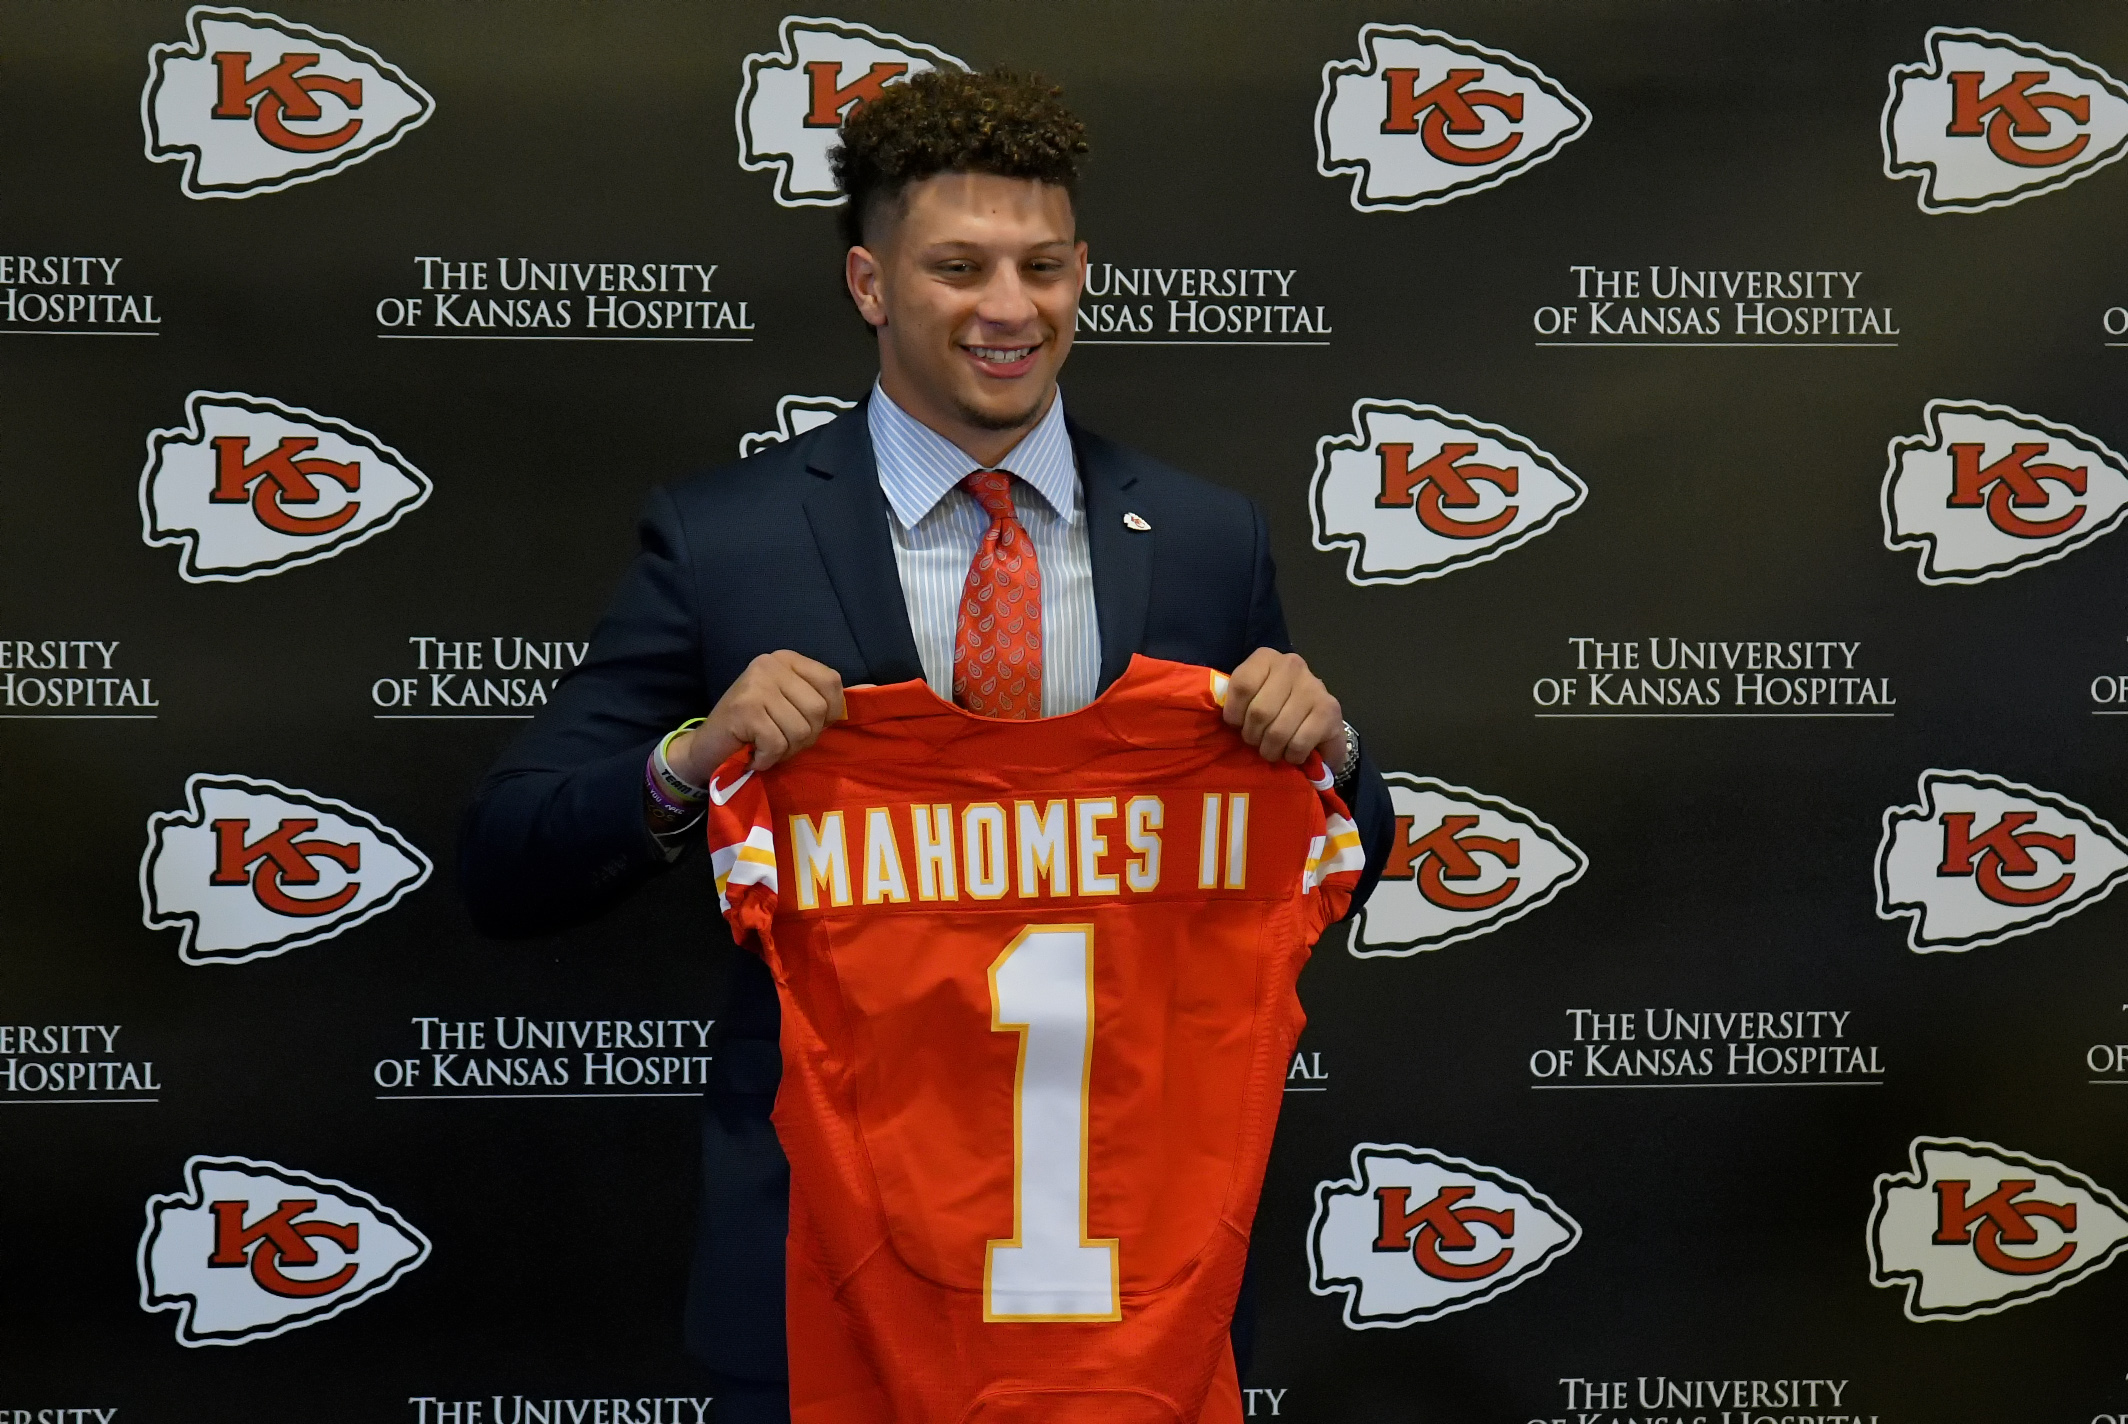 10034625-nfl-kansas-city-chiefs-patrick-mahomes-press-conference-2